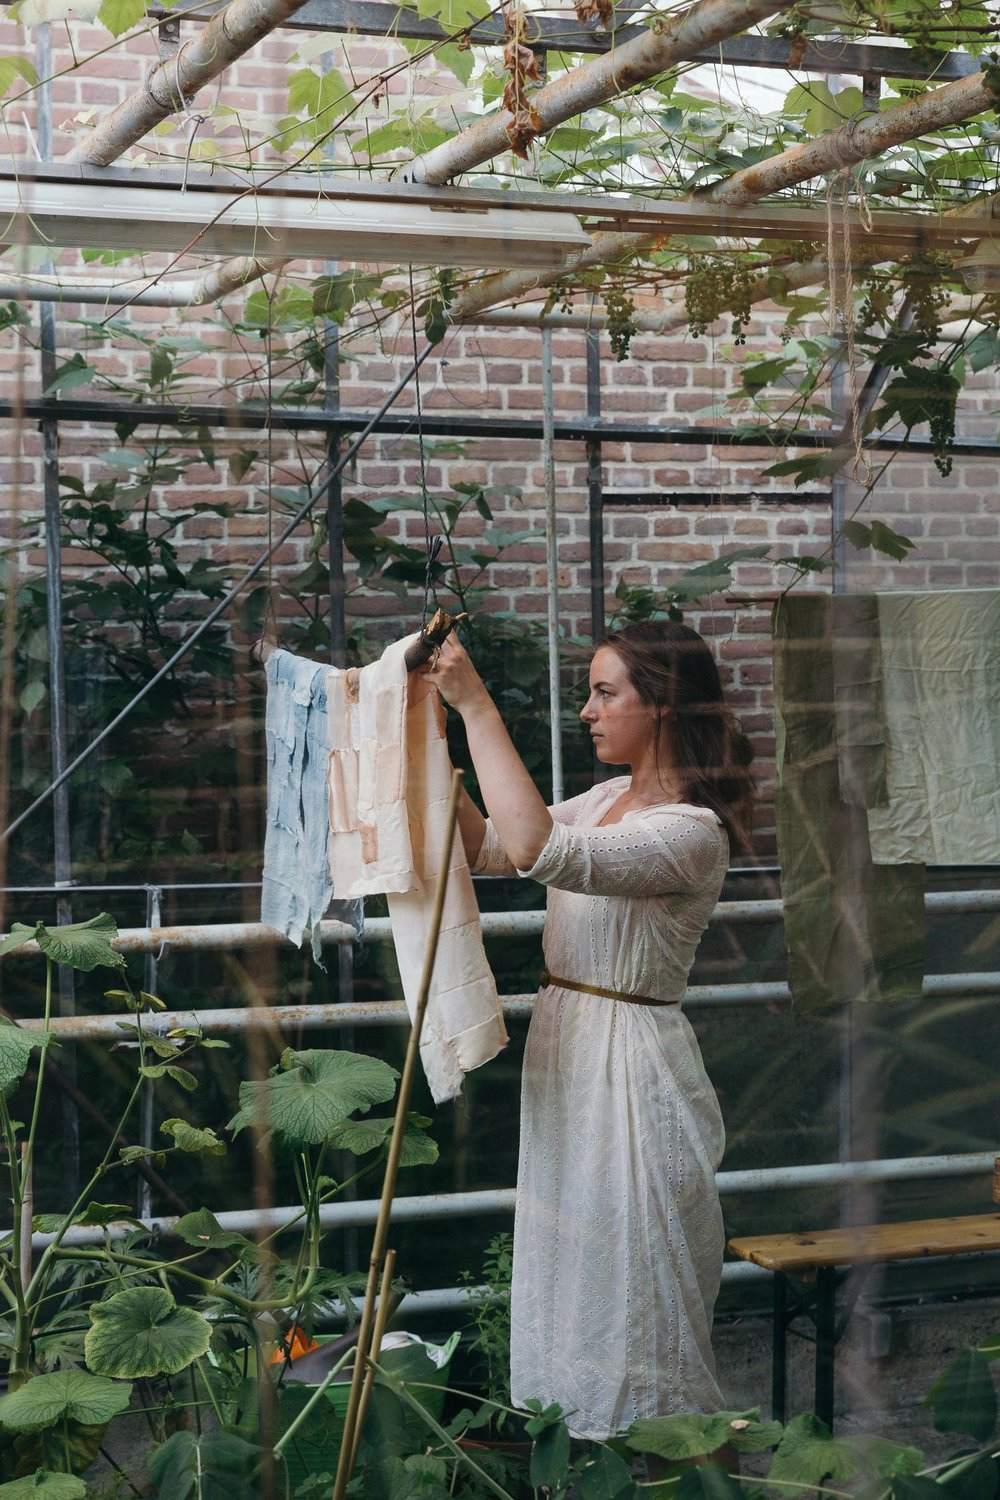 Elin Wanderlust - Natural Dyeing with flowers and plants - Amste